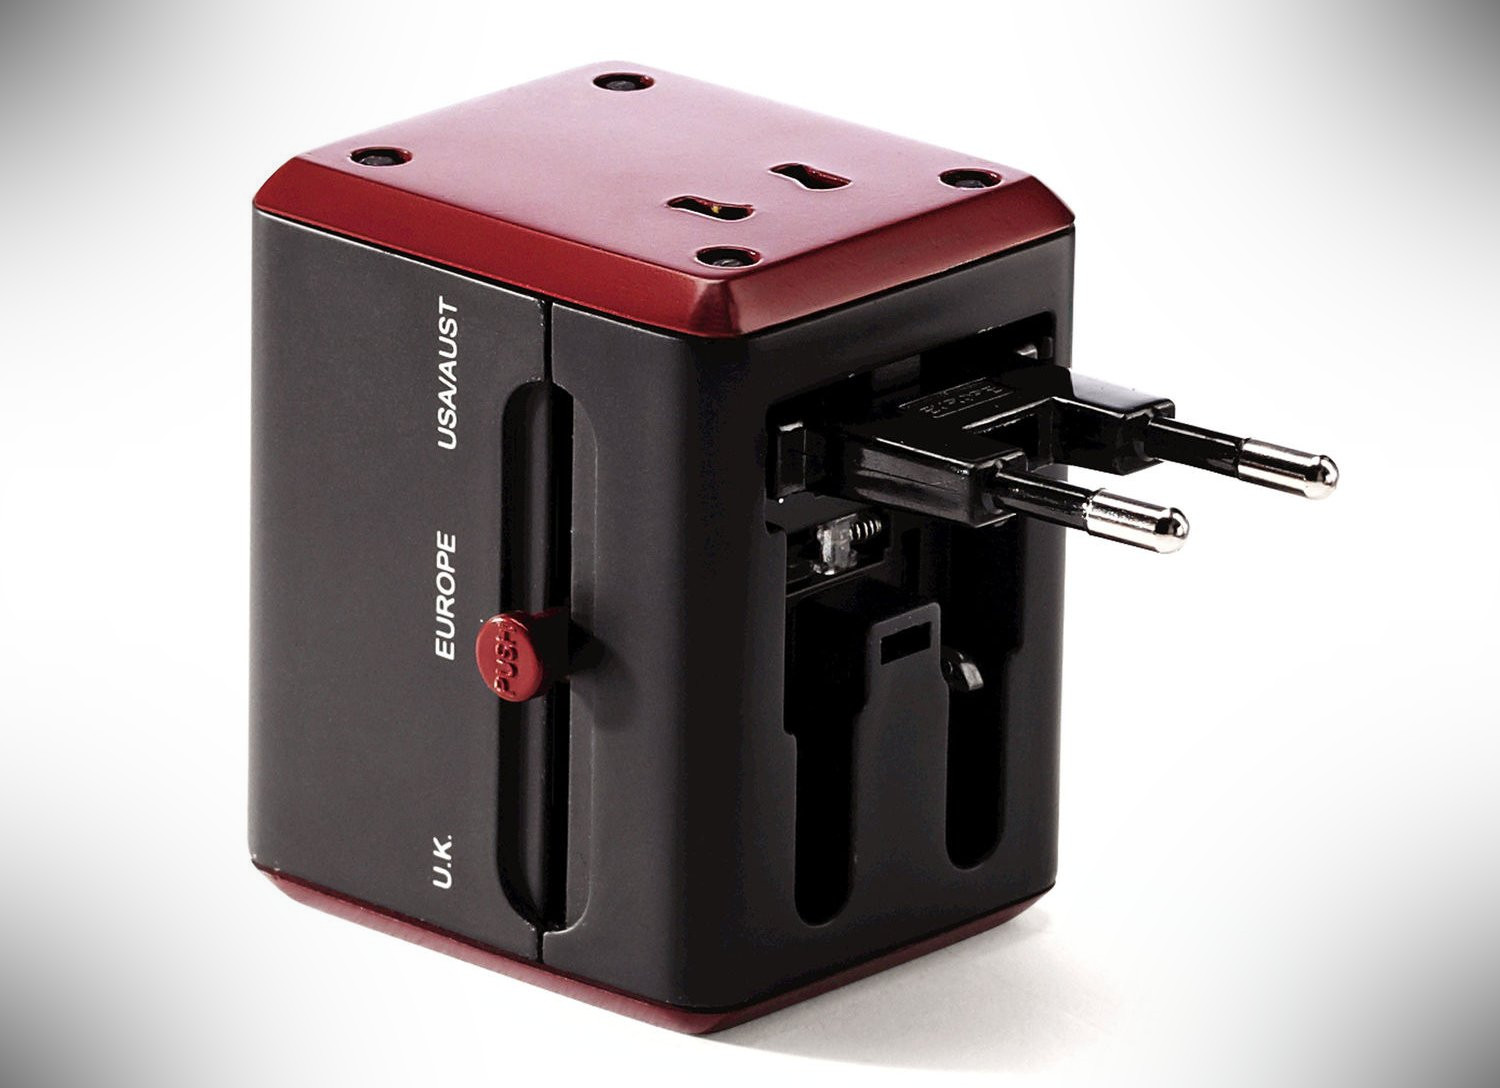 Samsonite World Wide Power Adapter – gift for traveler